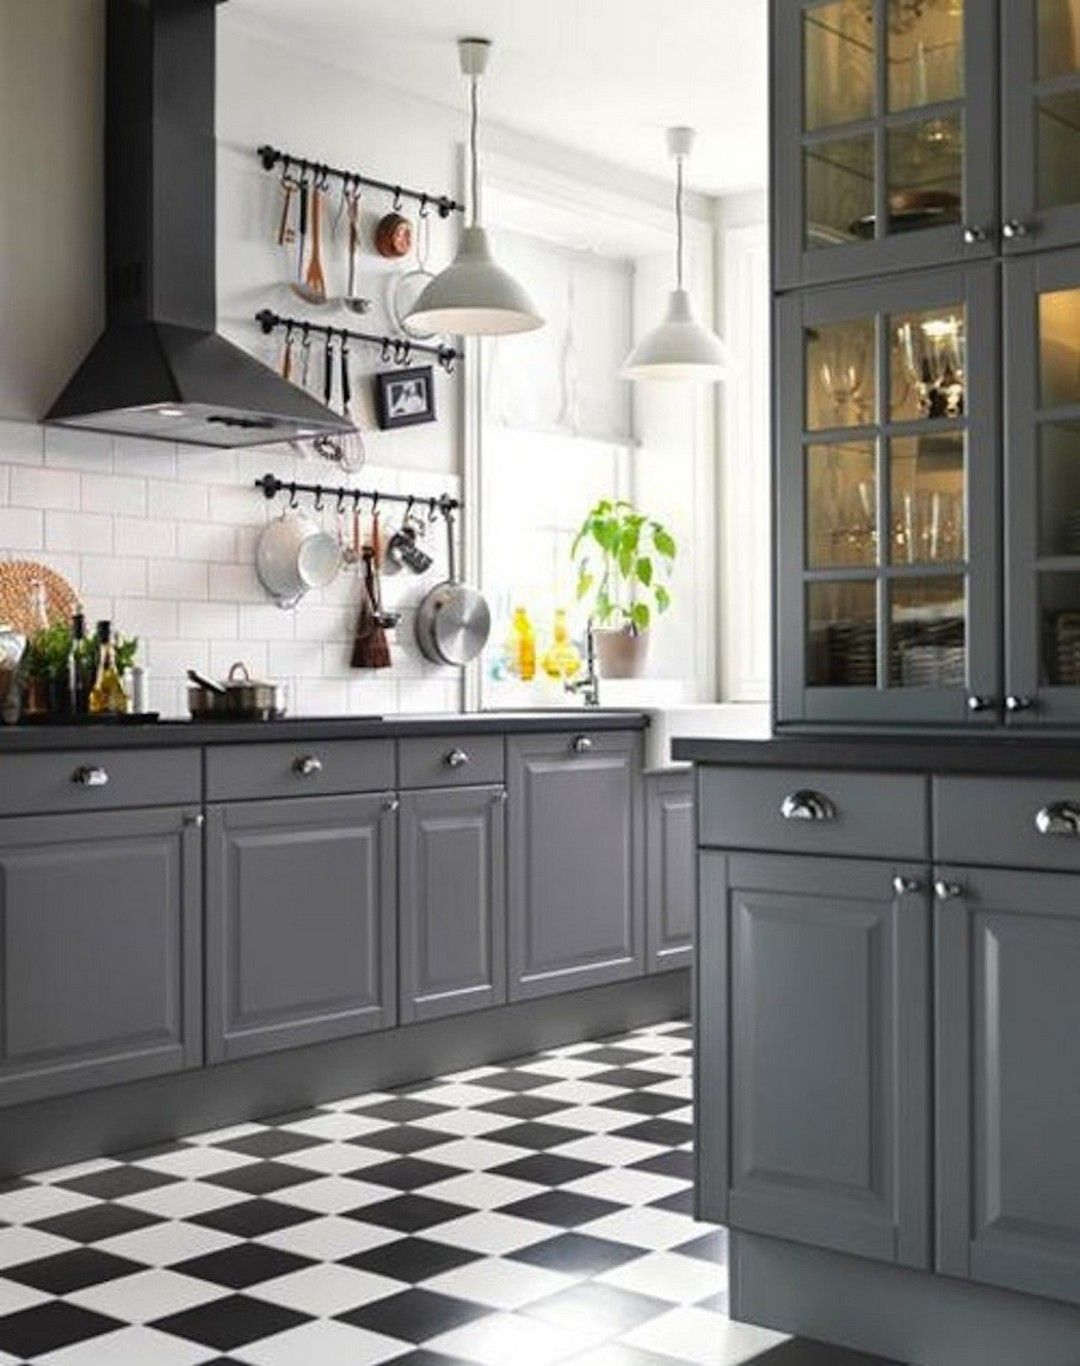 Modern Gray Kitchen Remodel And Design Ideas 99 Gorgeous Photos Prepossessing Kitchen Remodel Design Design Inspiration